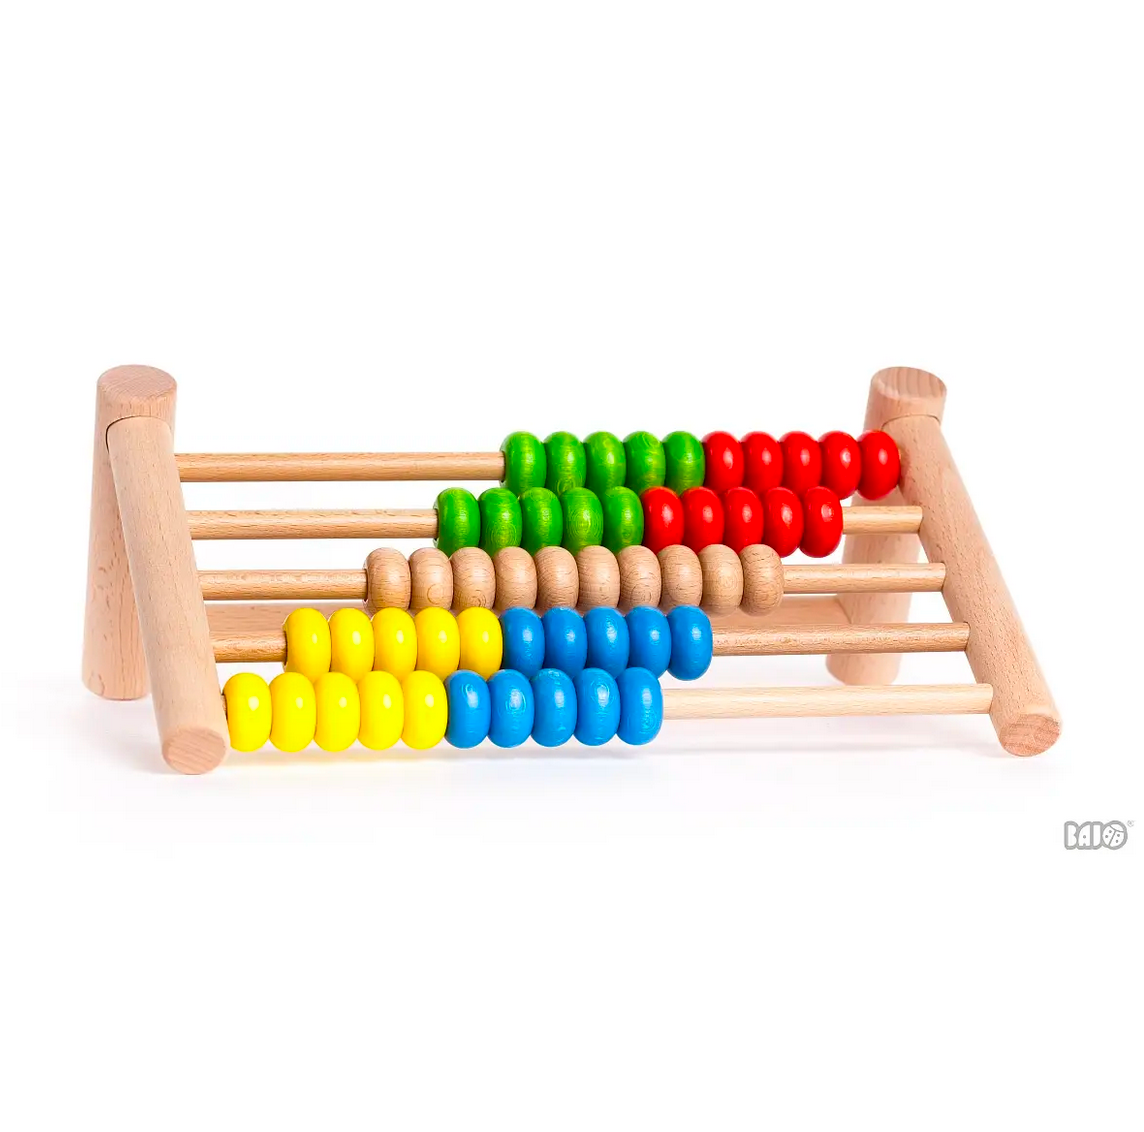 Wooden Abacus 50 by Bajo